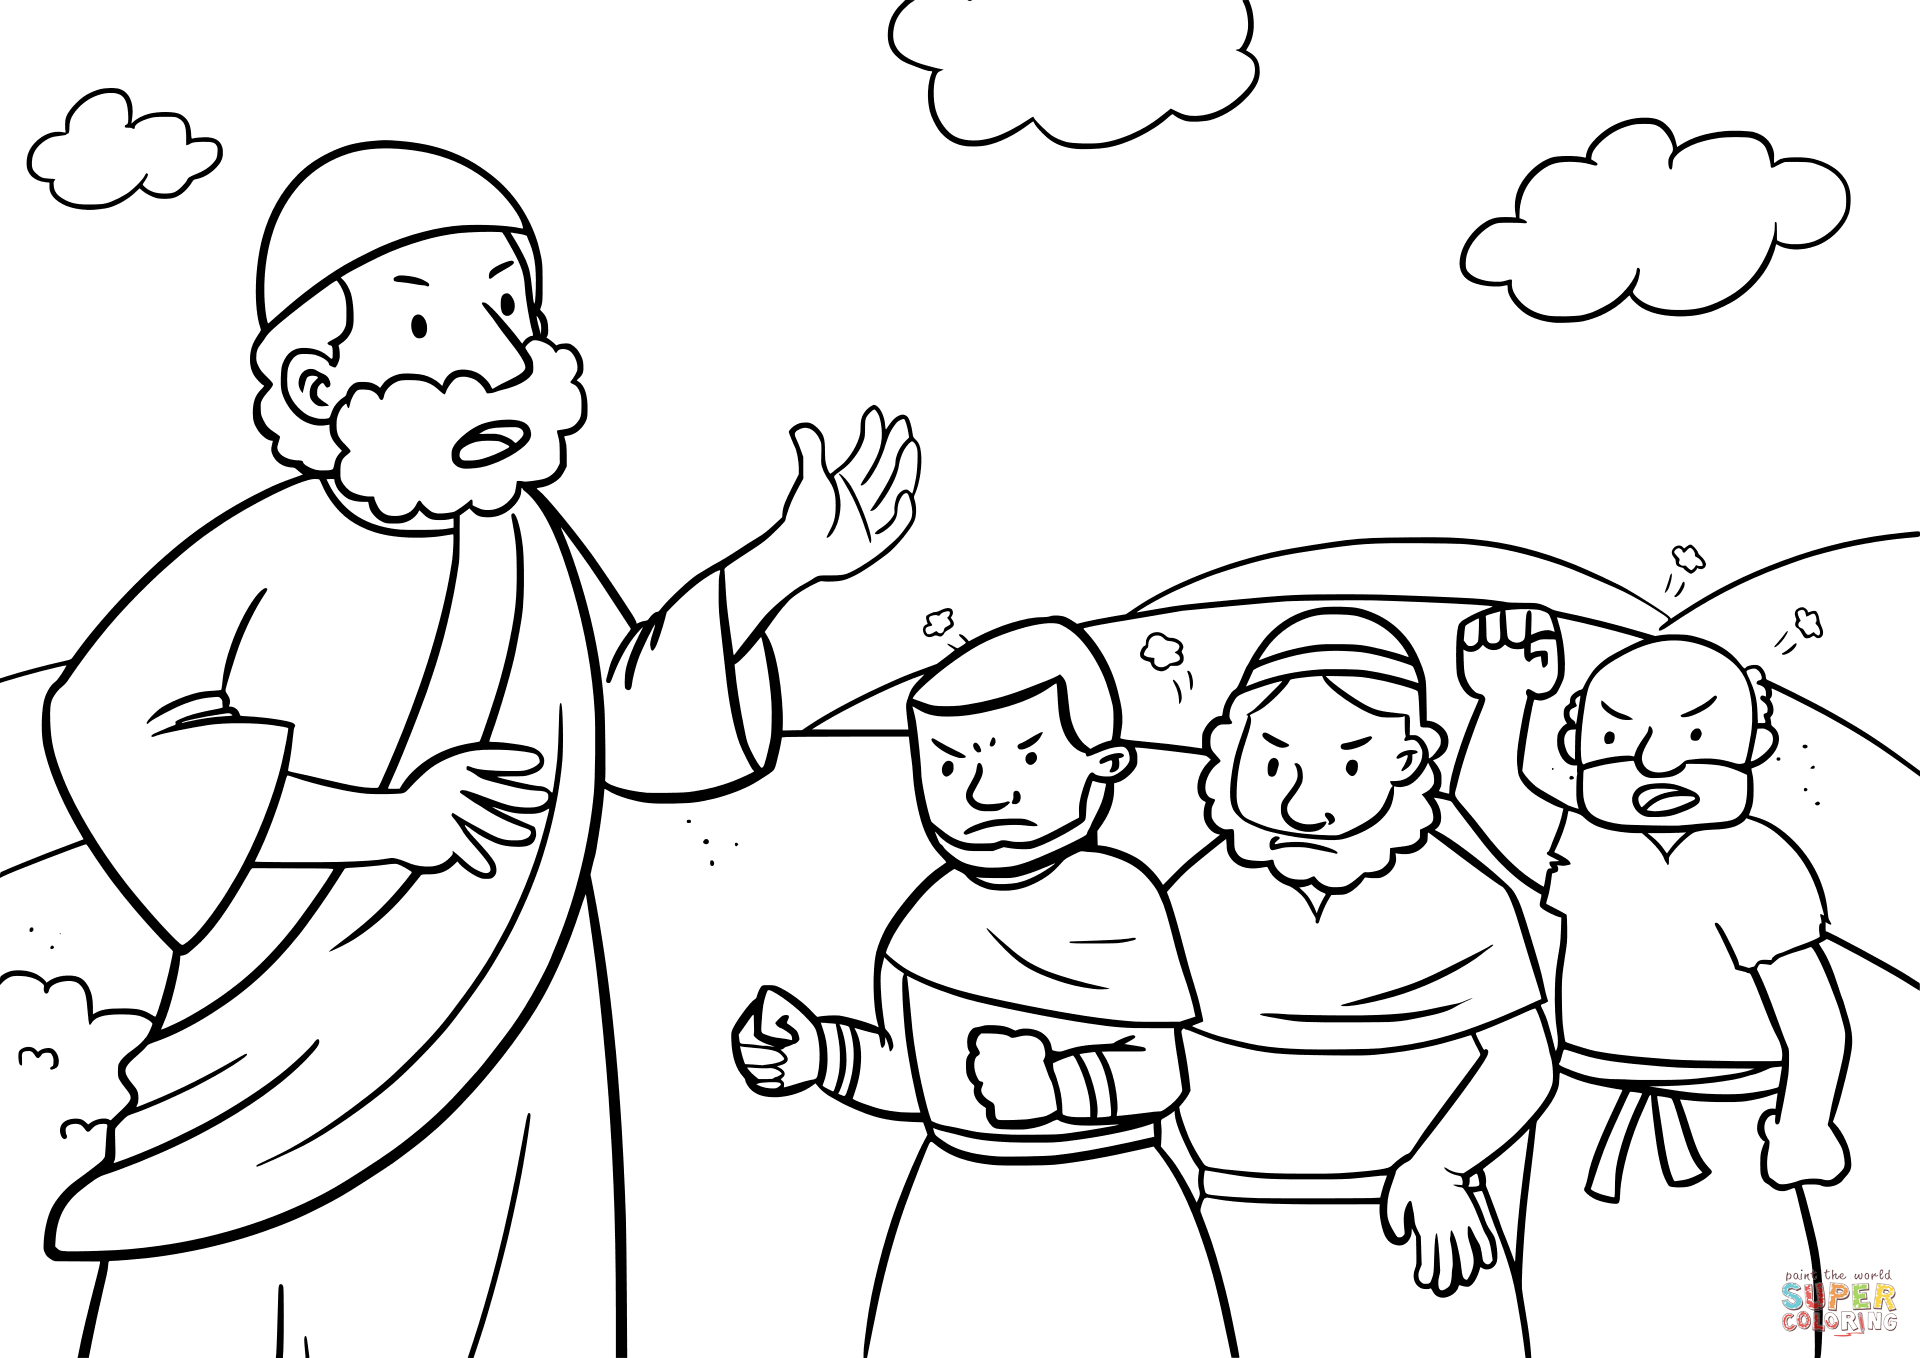 1920x1358 Israelites Complaining To Moses Coloring Page Free Printable